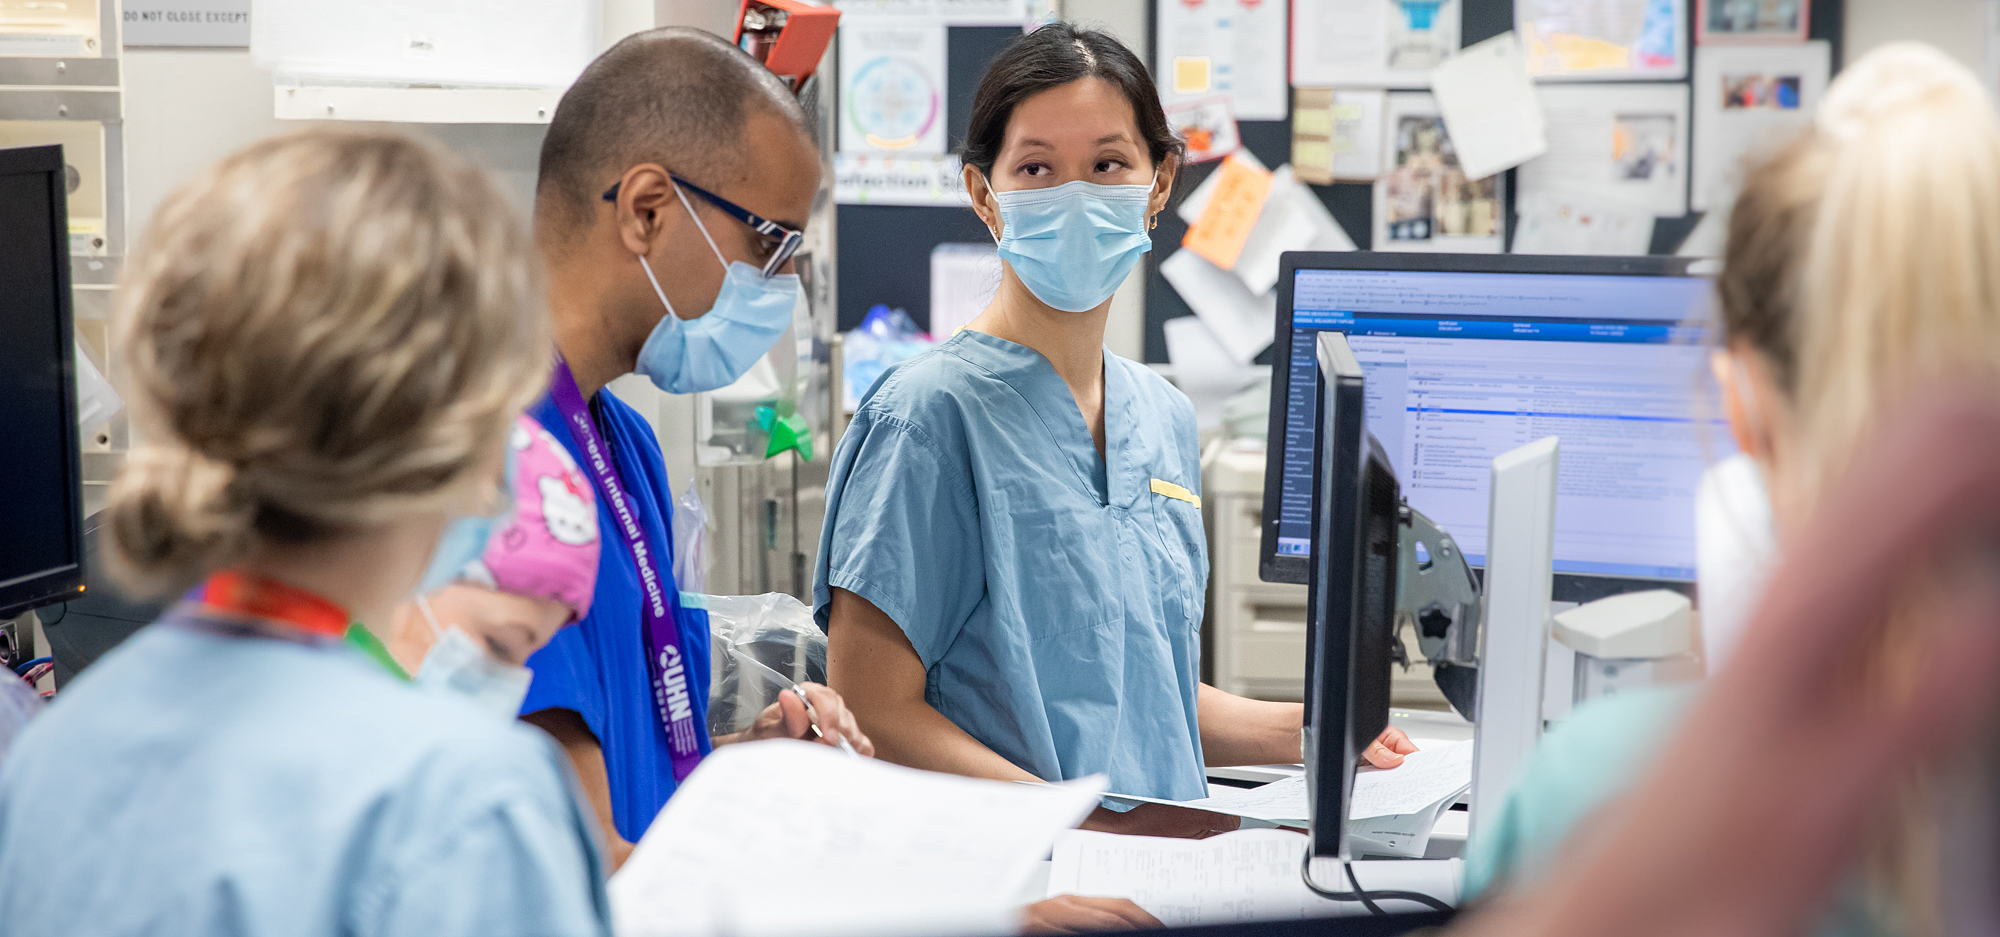 Teamwork and tenacity: reflections on the pandemic from the ICU